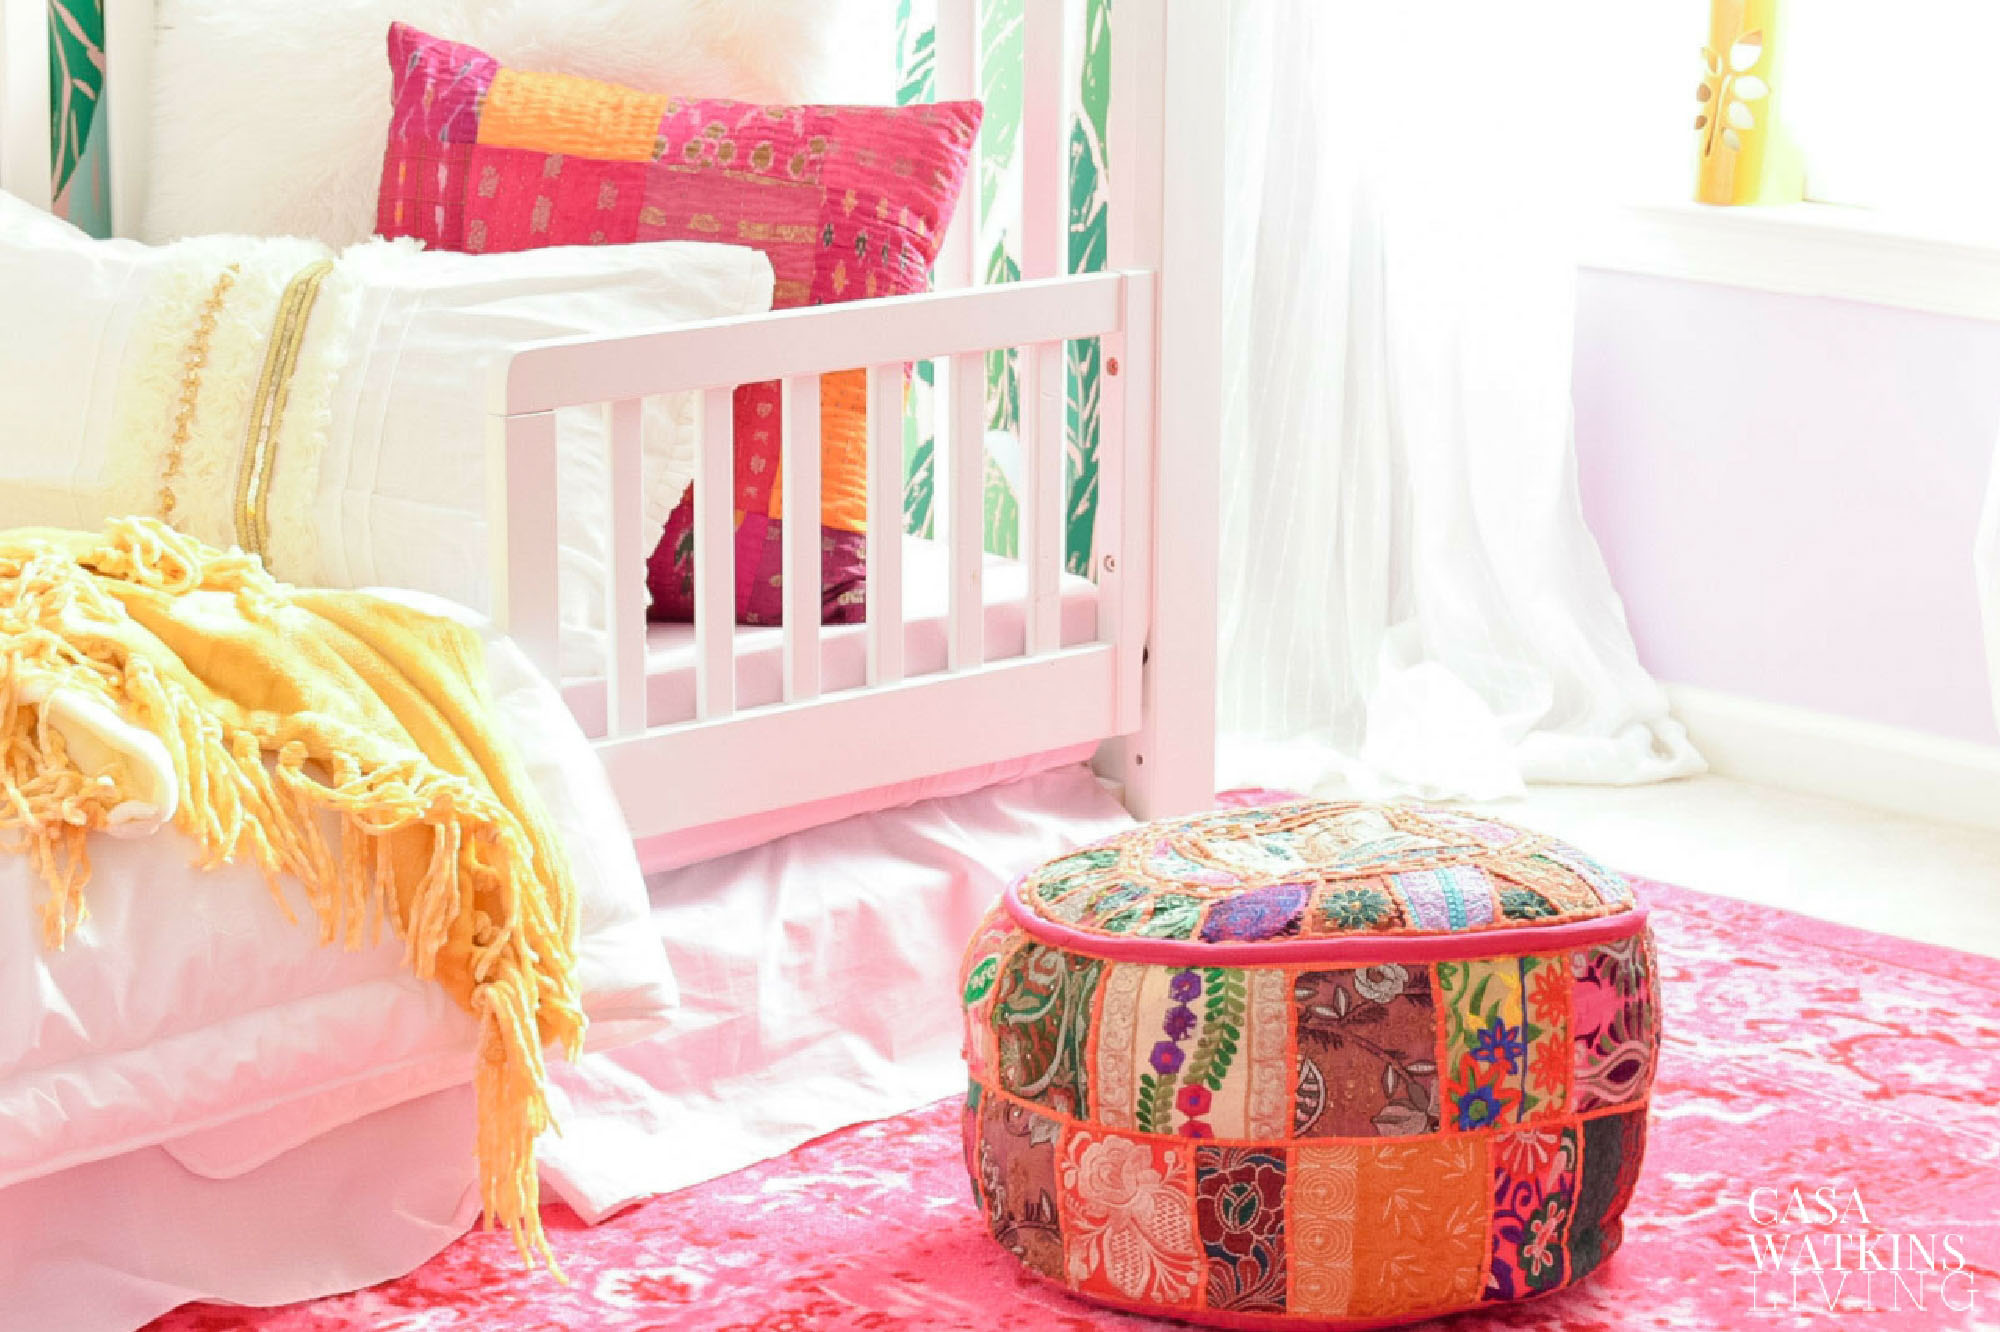 Moroccan style pouf in global boho girls room makeover